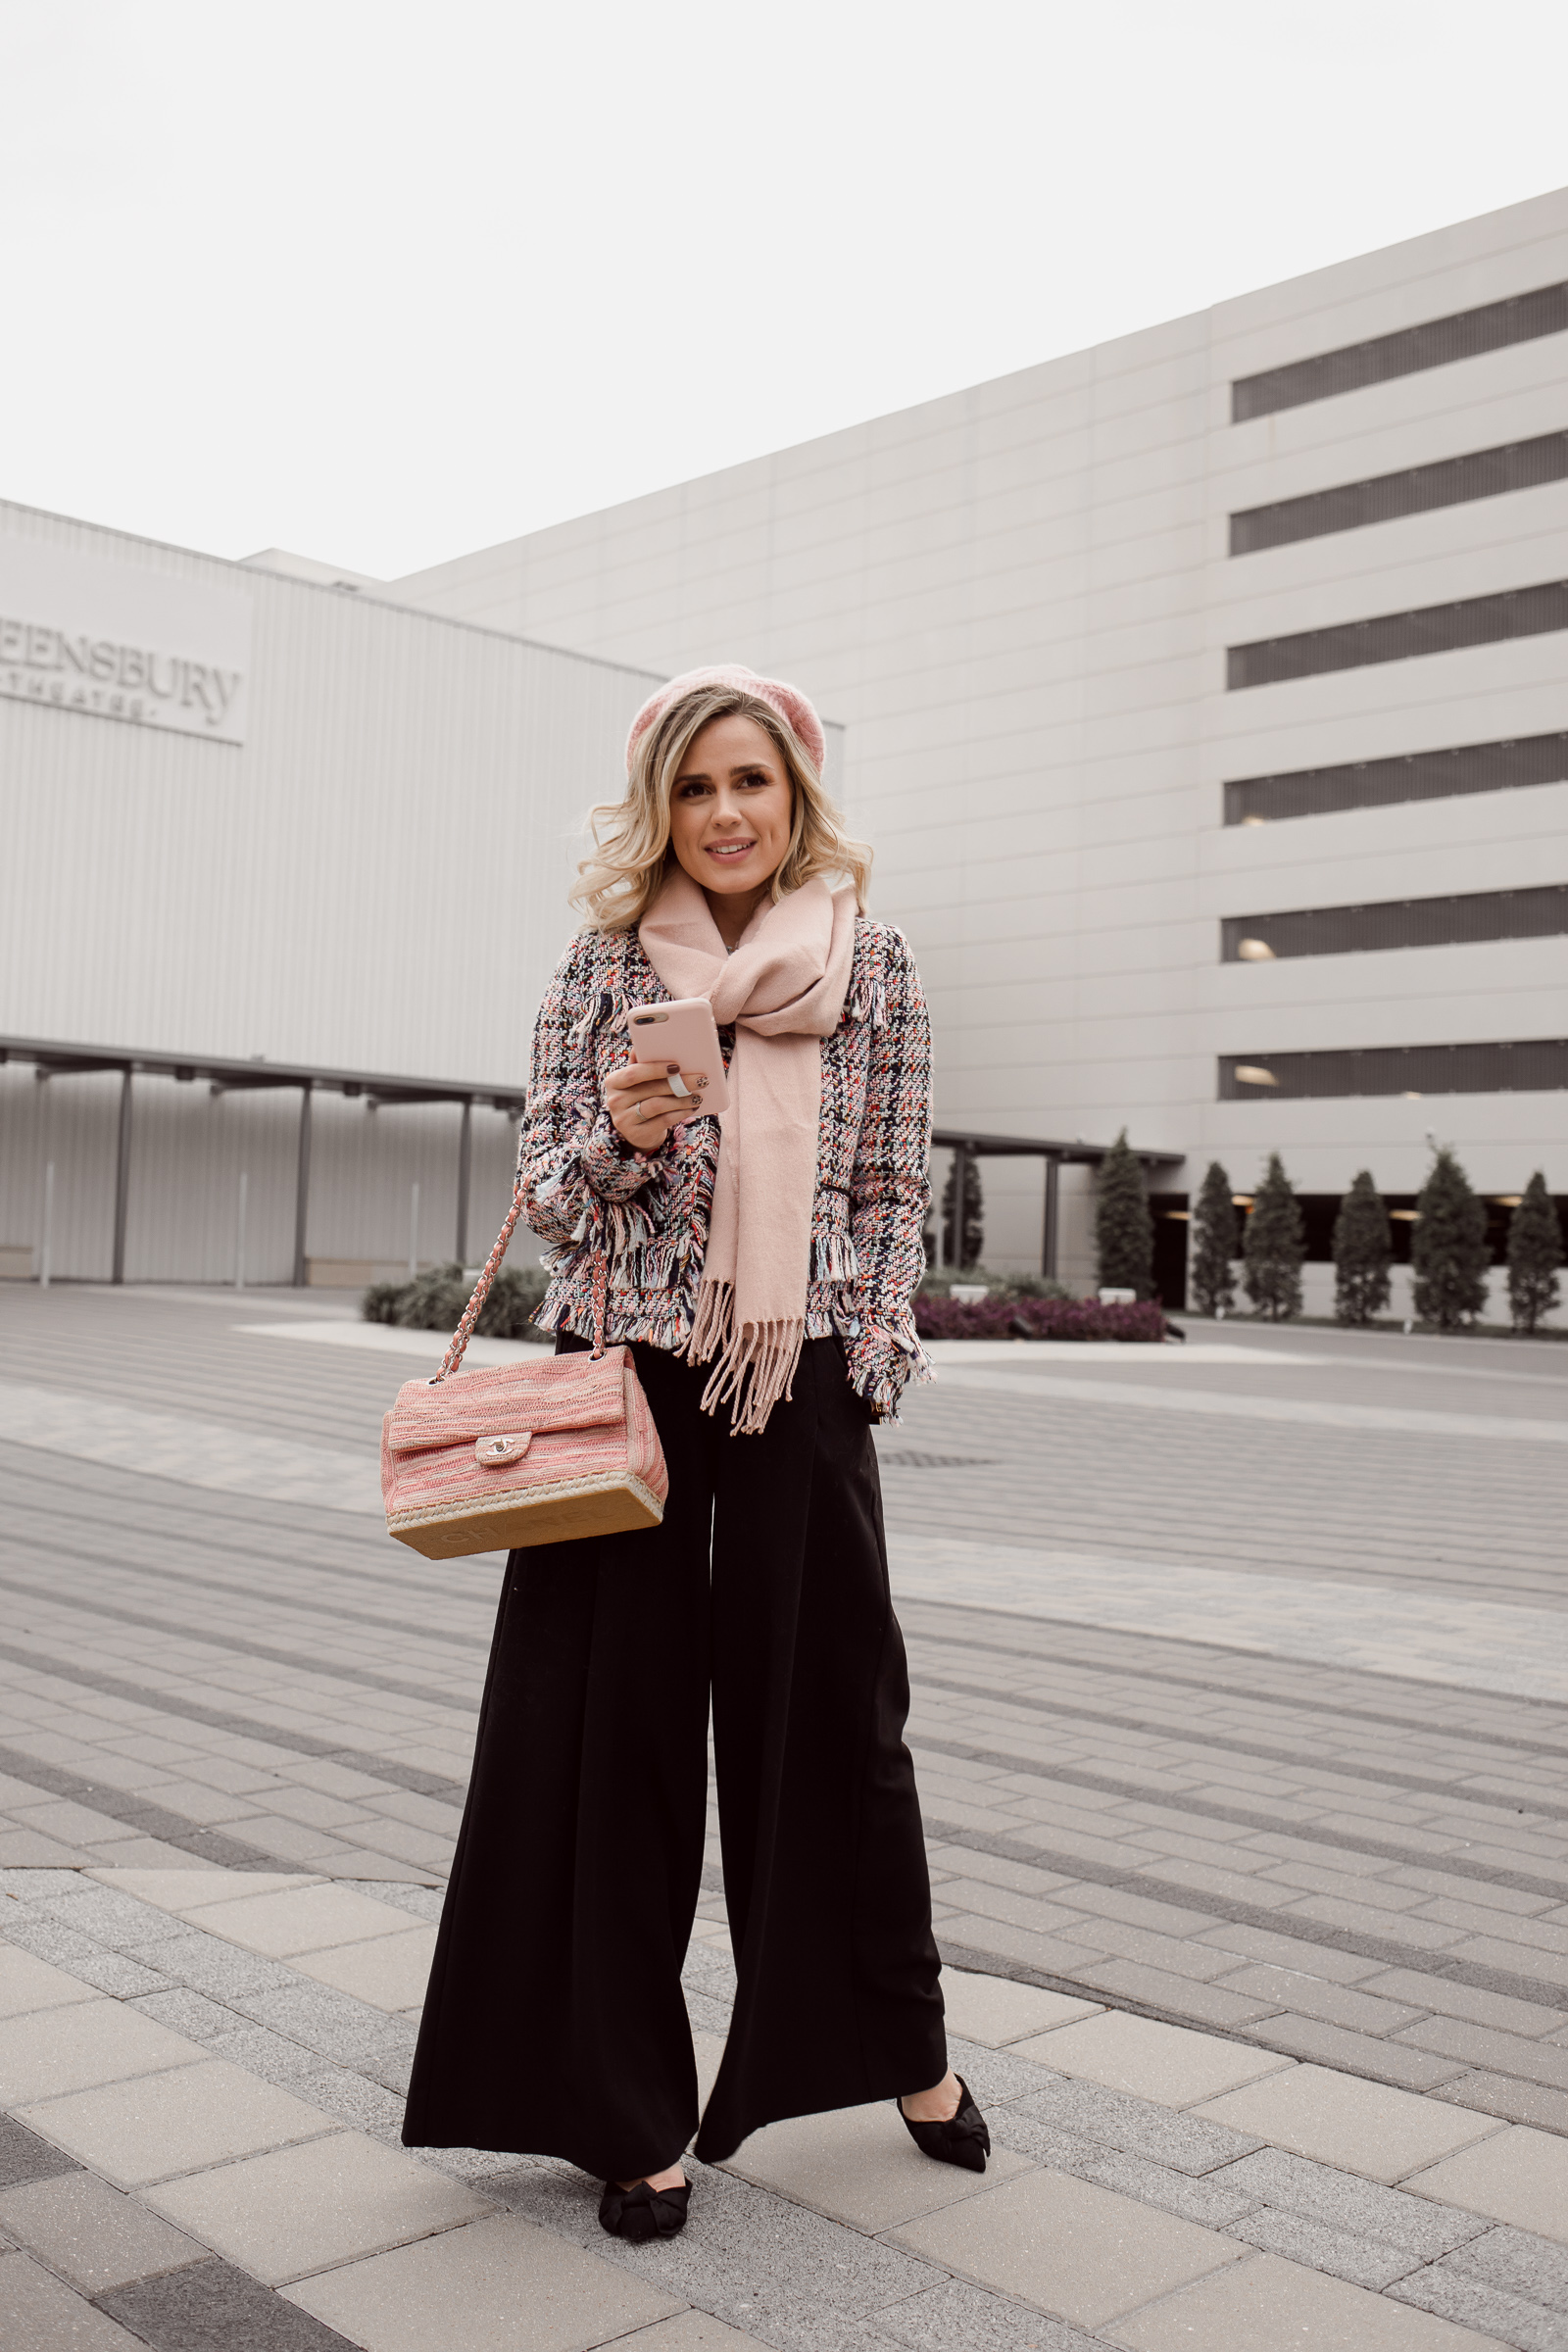 Houston beauty blogger Uptown with Elly Brown wears a wide leg trouser with a tweed jacket